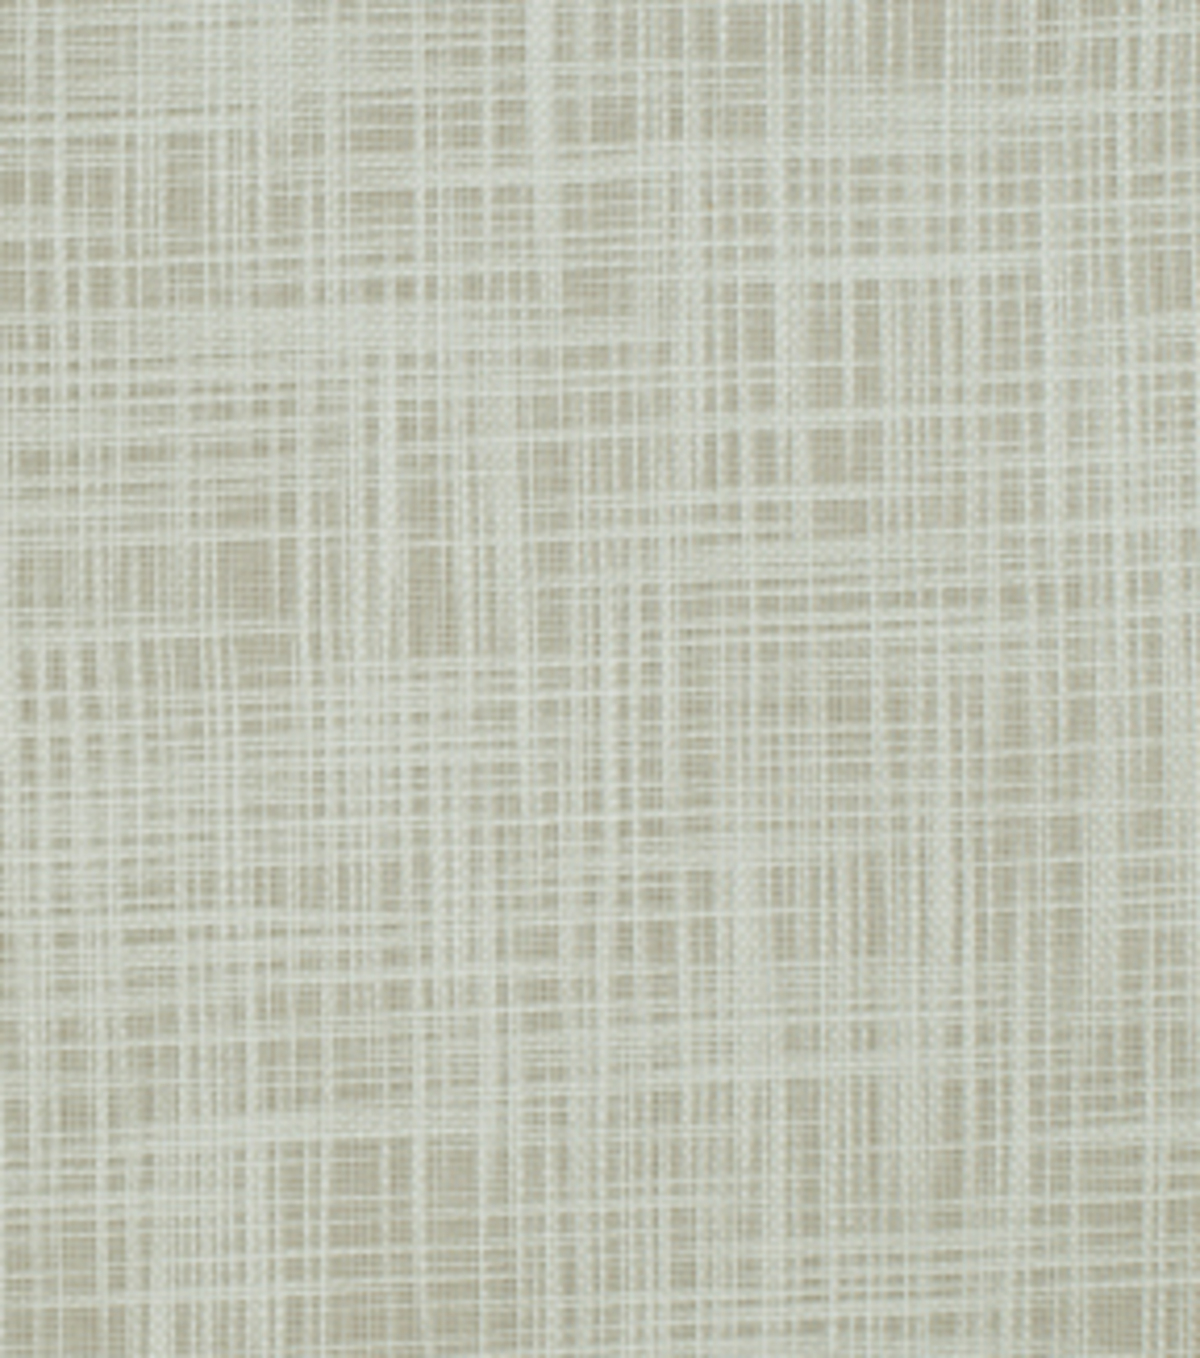 Home Decor 8\u0022x8\u0022 Fabric Swatch-Eaton Square Bankroll Opal